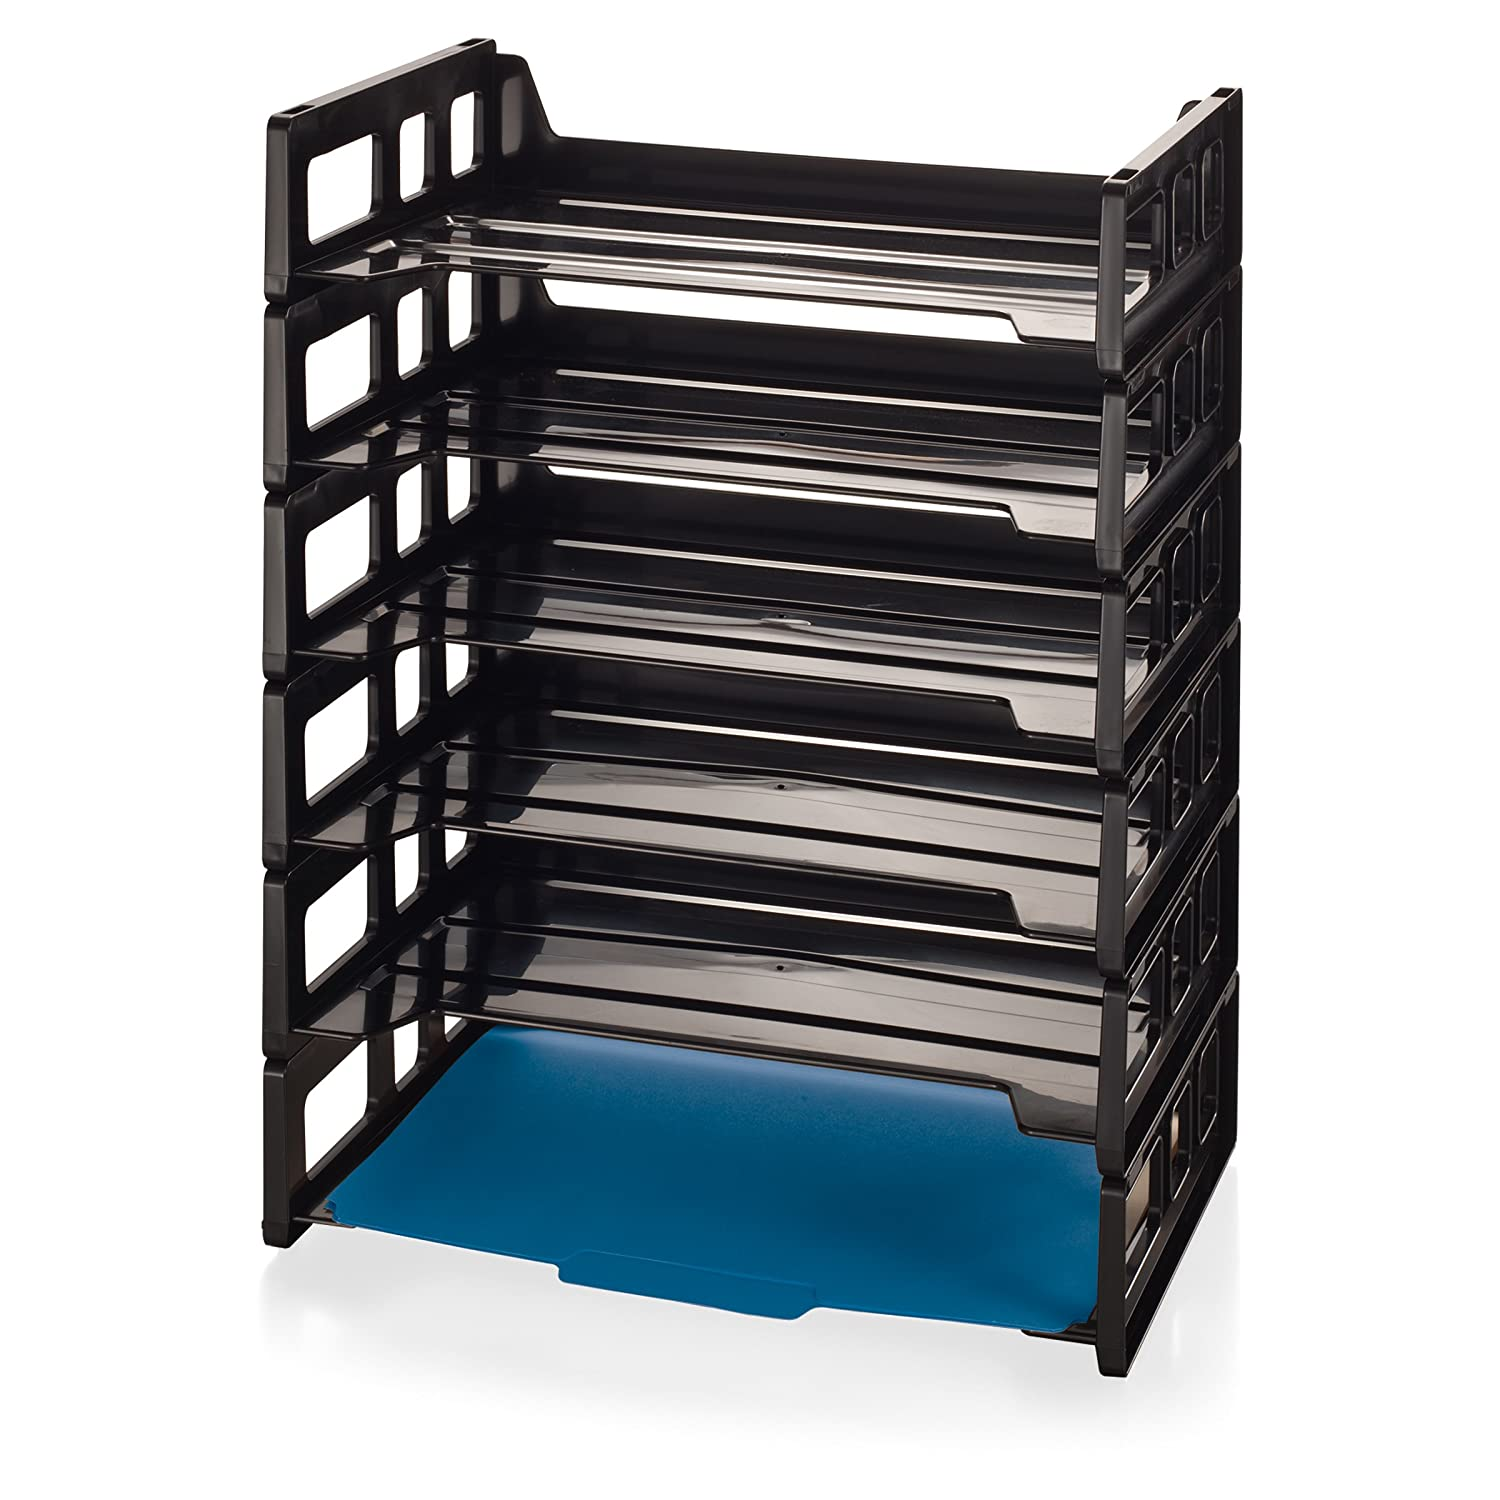 Officemate Side Load Letter Tray, Black, 6 Pack (21062) Officemate International